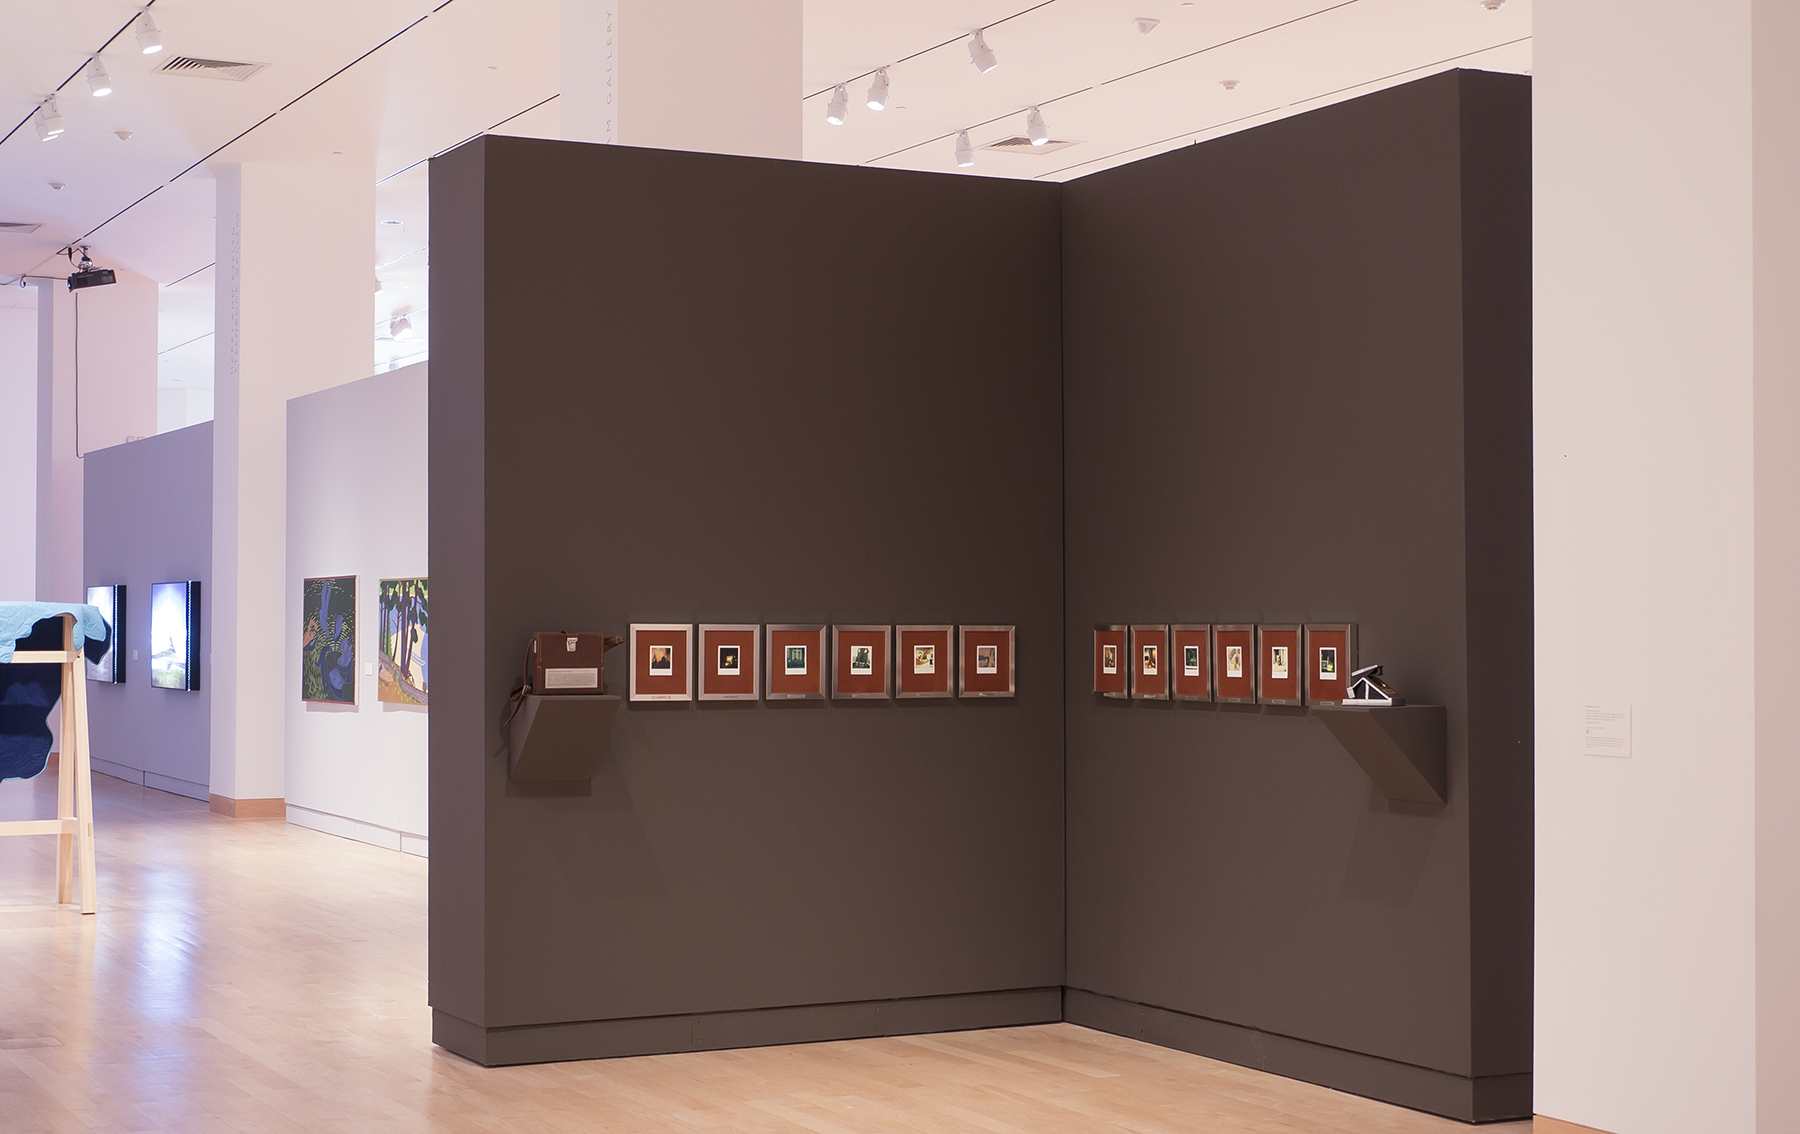 Installation view, Wisconsin Triennial Exhibition, Madison Museum of Contemporary Art, September 2013-January 2014. Installation consists of twelve SX-70 Polaroids, Impossible Project film, embossed vintage chrome and leather SX-70 Polaroid camera body and leather carrying case.